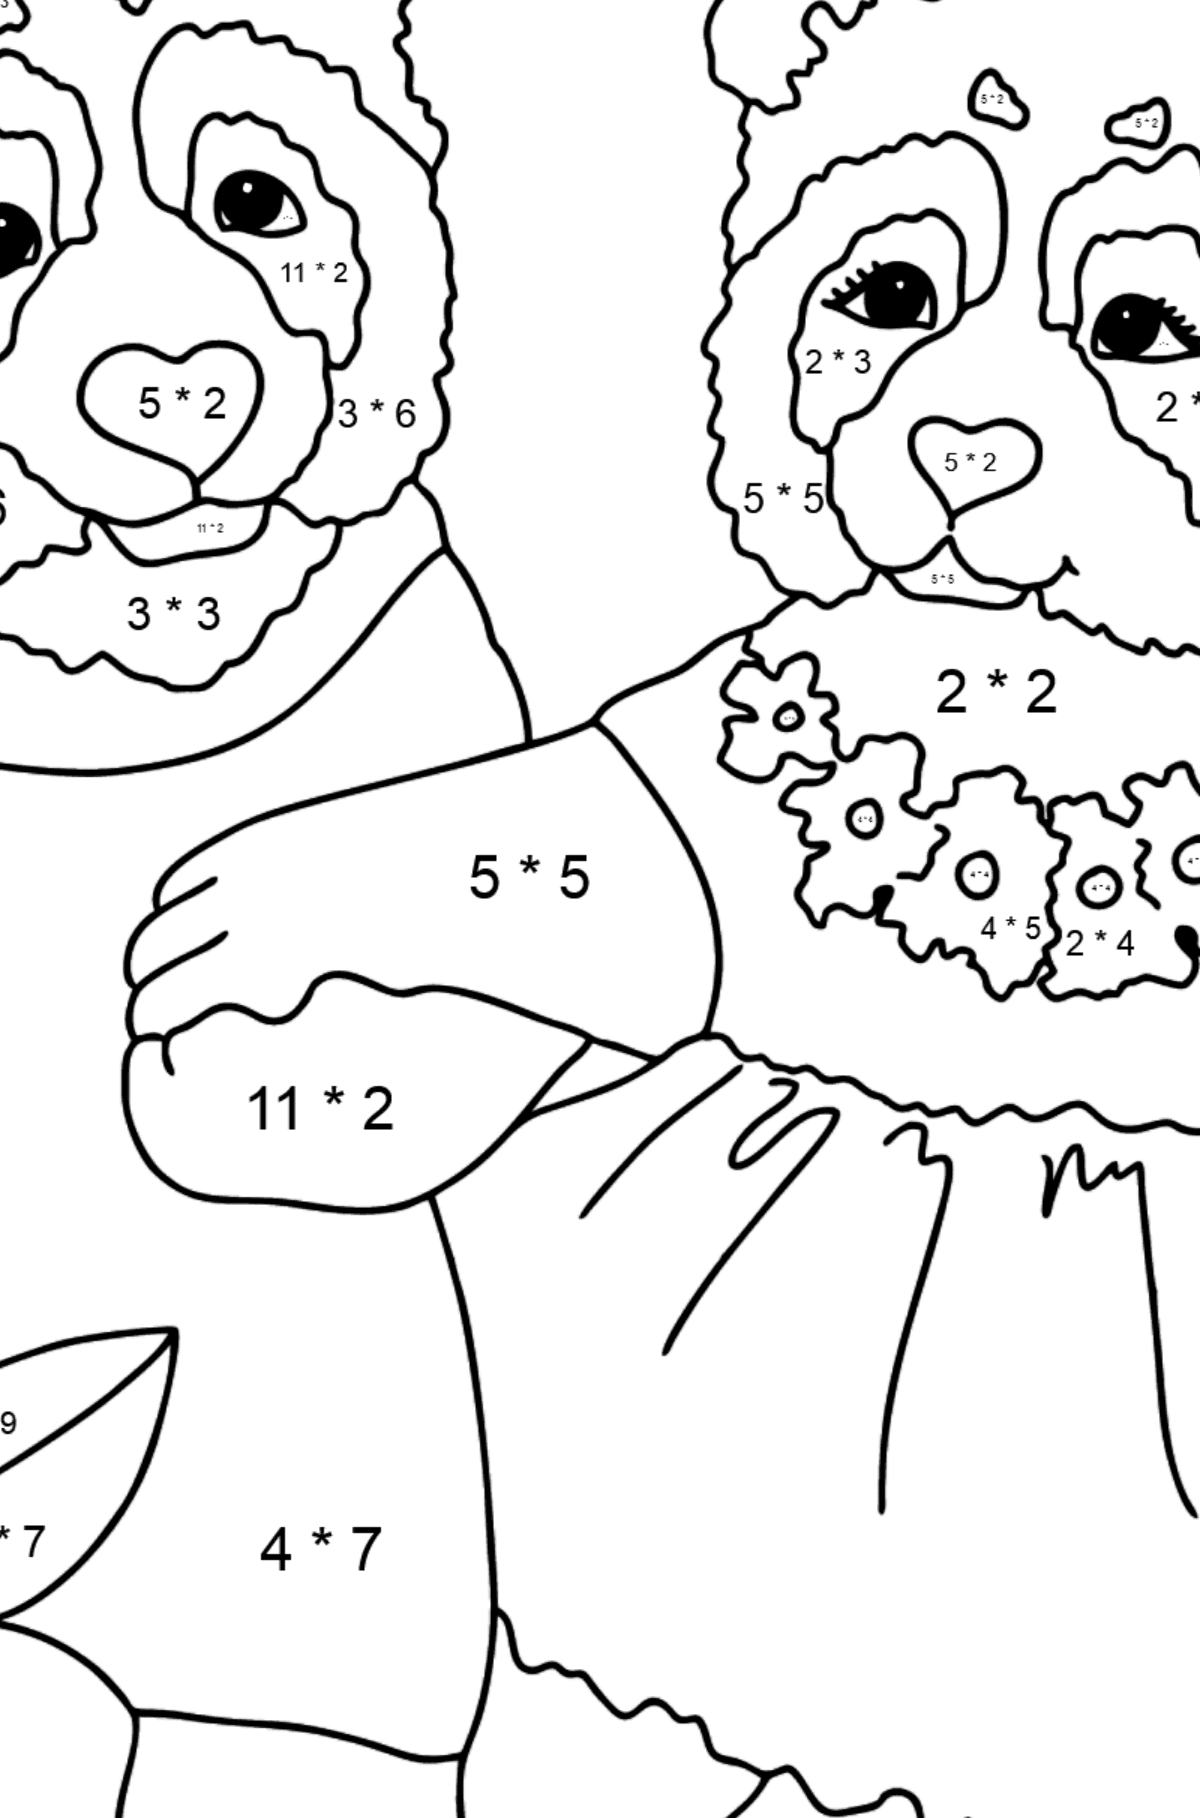 Coloring Page - Pandas are Having a Rest - Math Coloring - Multiplication for Kids